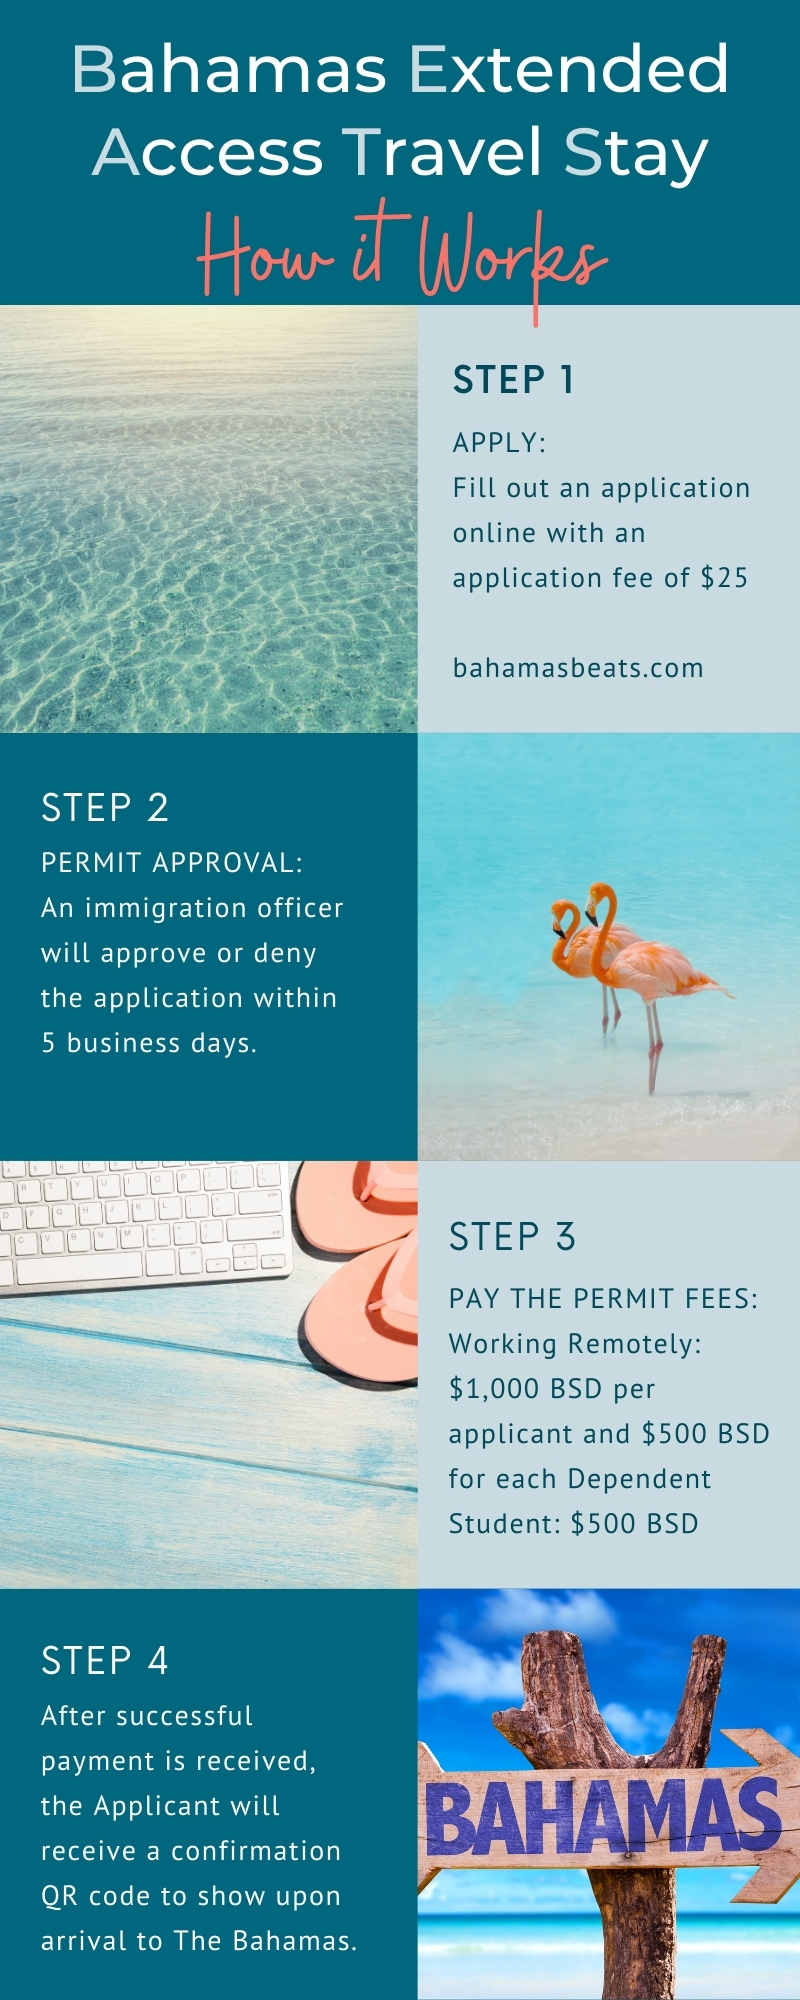 How it Works: Bahamas Extended Access Travel